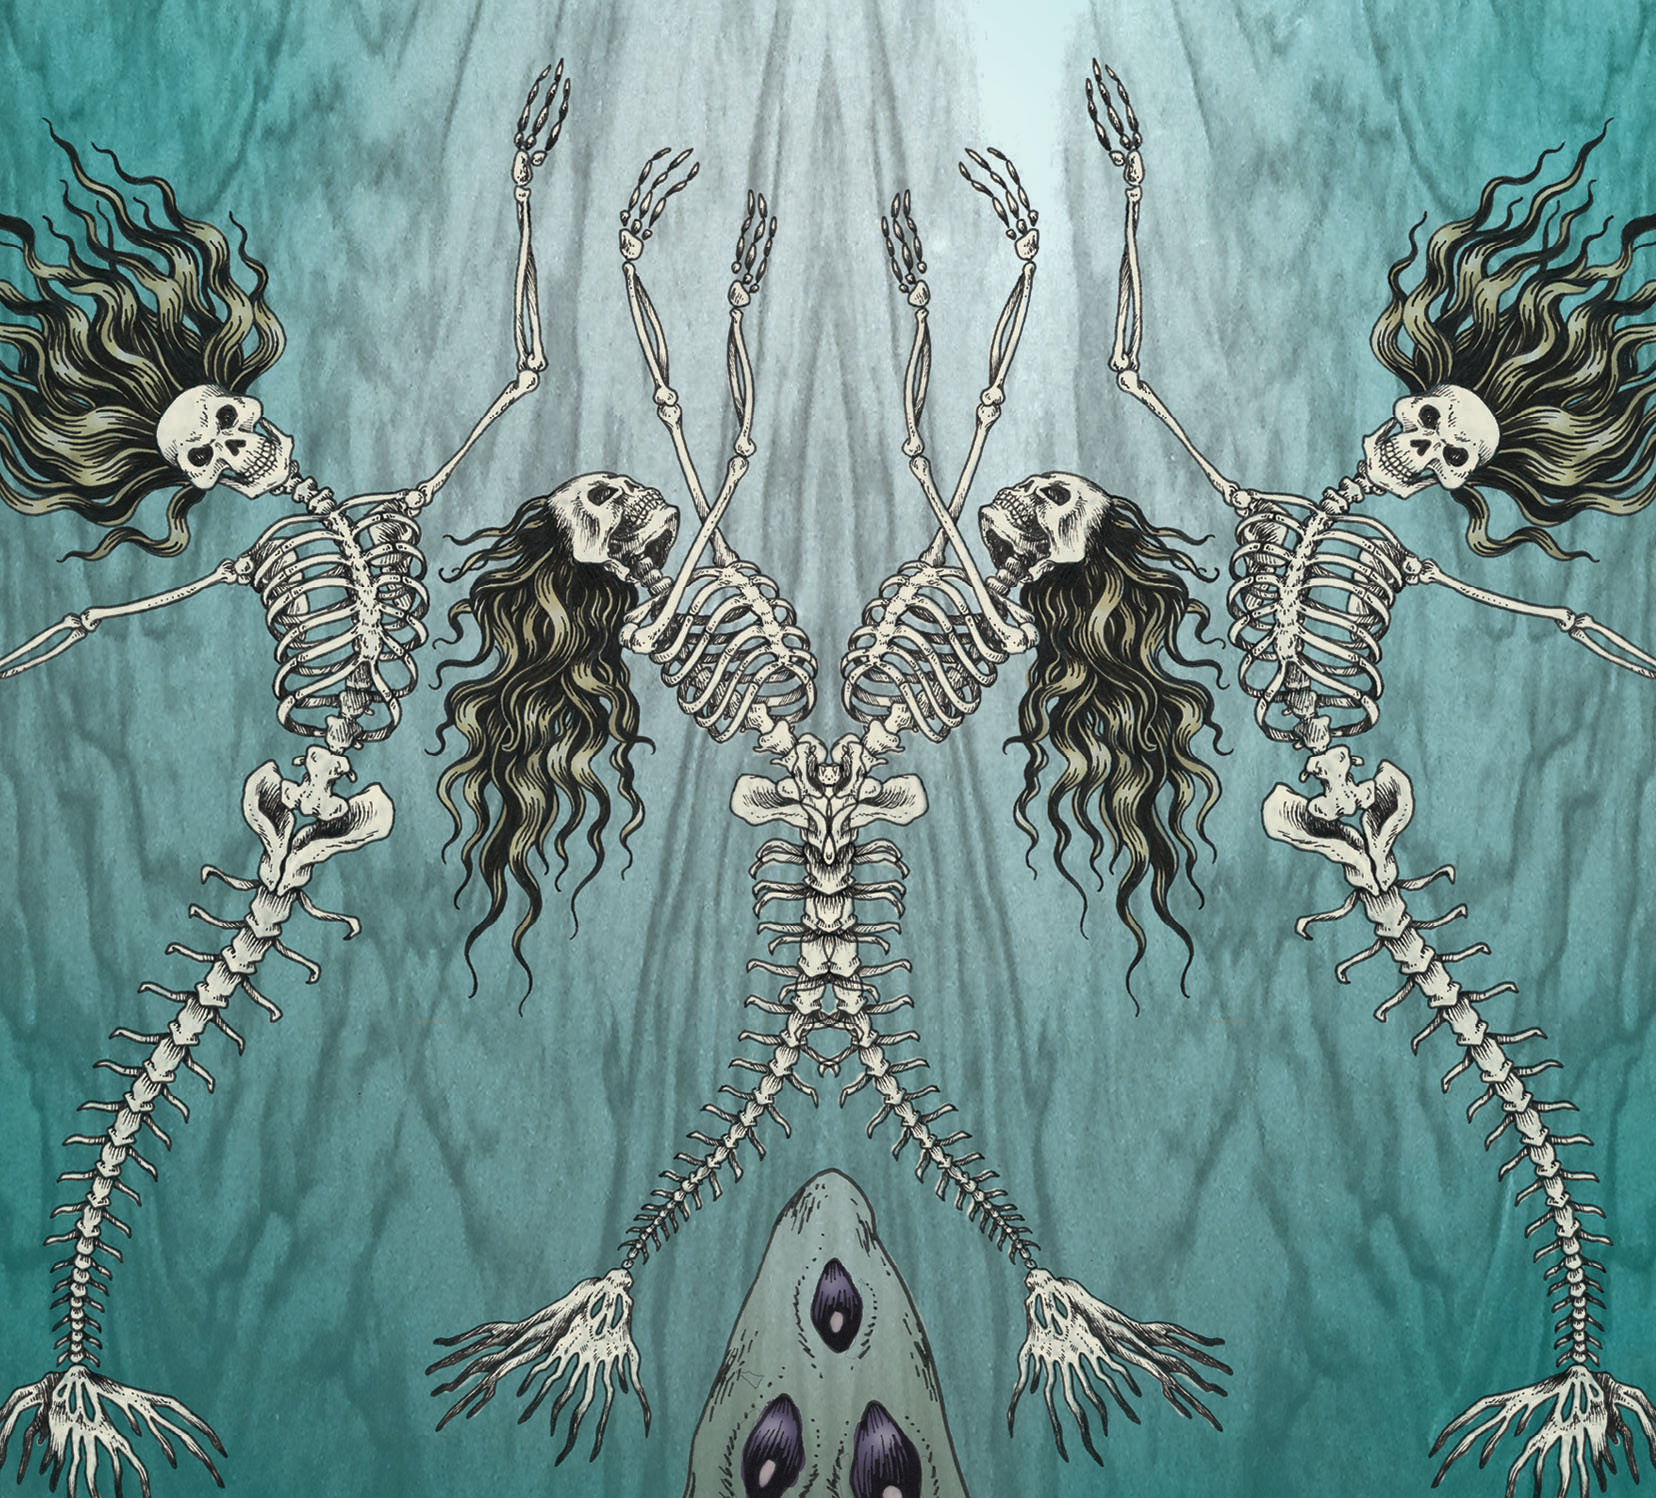 Jegulja skeleton mermaids